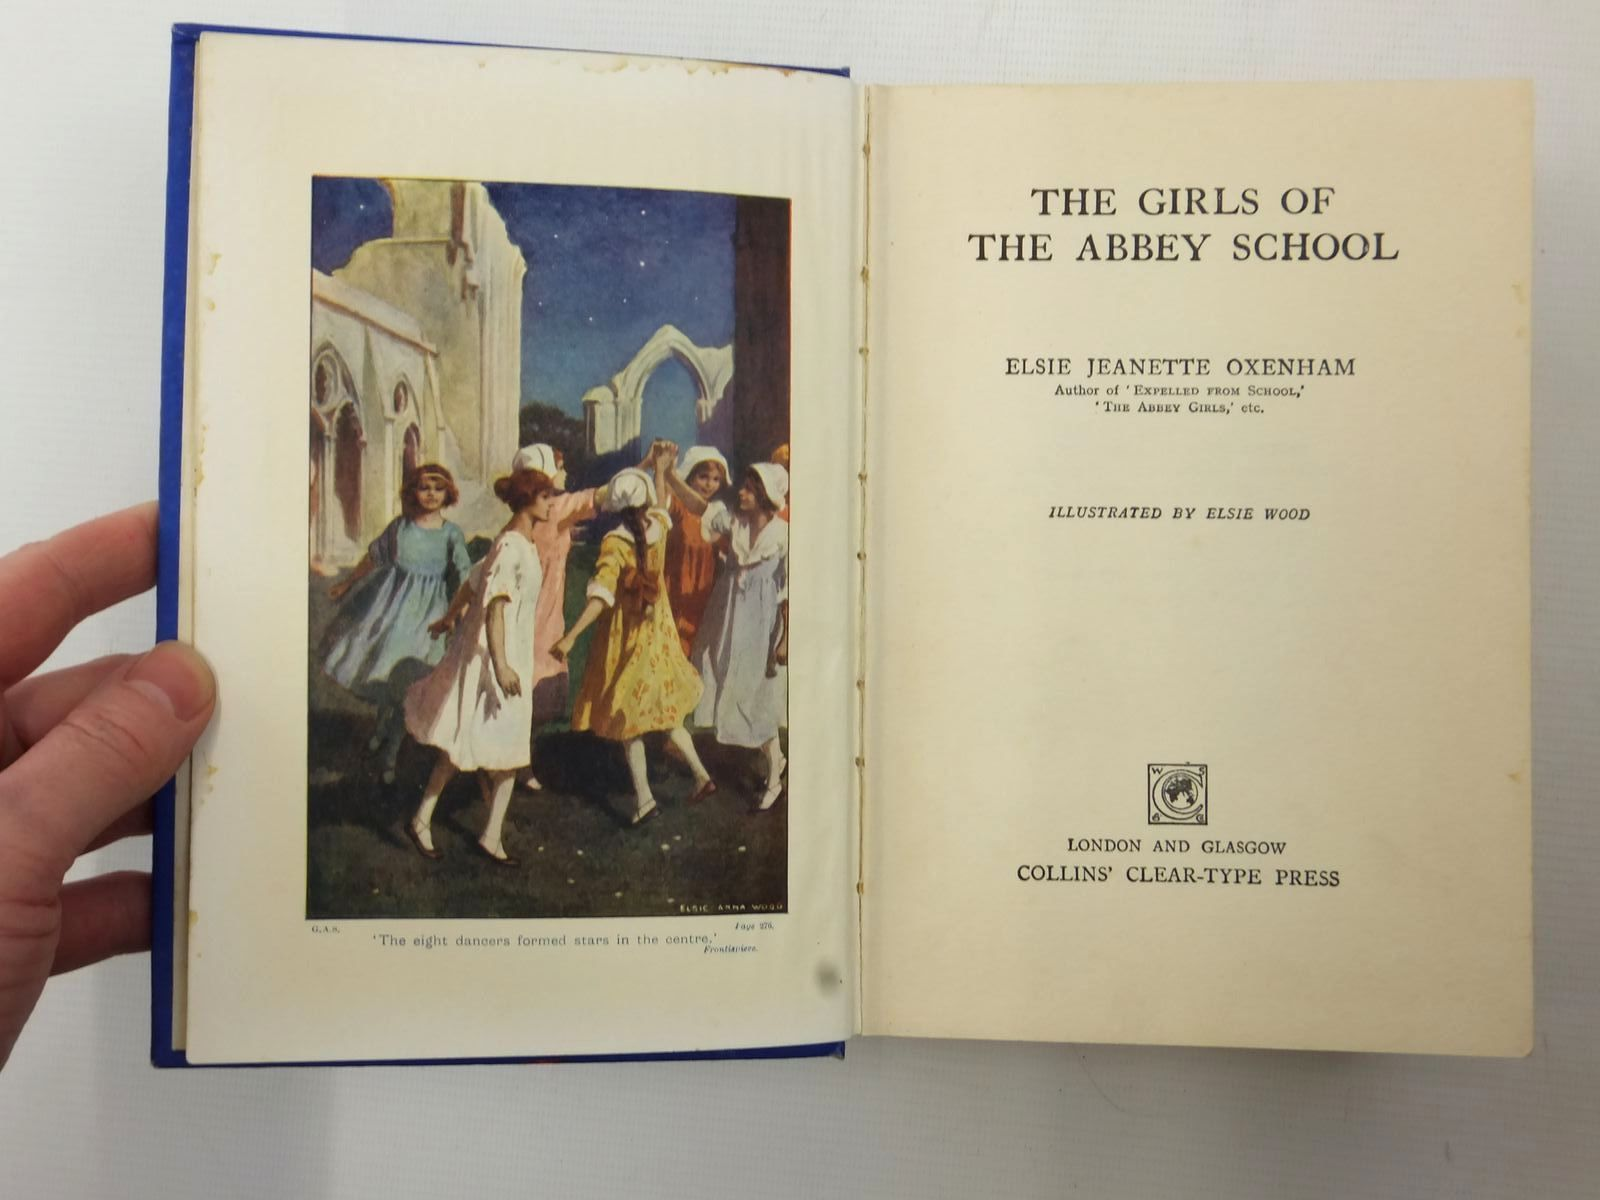 Photo of THE GIRLS OF THE ABBEY SCHOOL written by Oxenham, Elsie J. illustrated by Wood, Elsie Anna published by Collins Clear-Type Press (STOCK CODE: 1317197)  for sale by Stella & Rose's Books